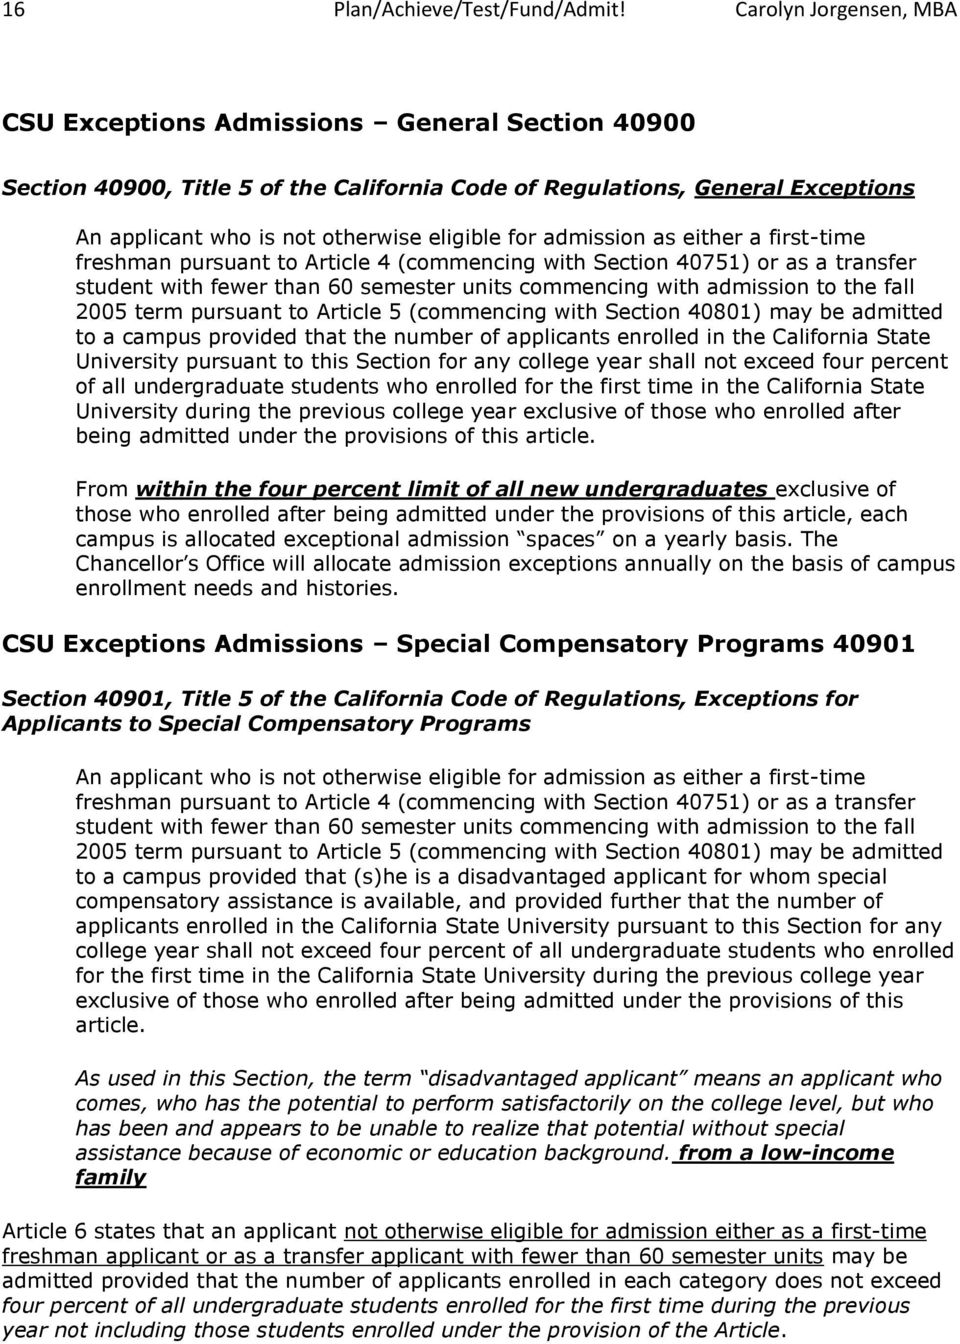 admission as either a first-time freshman pursuant to Article 4 (commencing with Section 40751) or as a transfer student with fewer than 60 semester units commencing with admission to the fall 2005